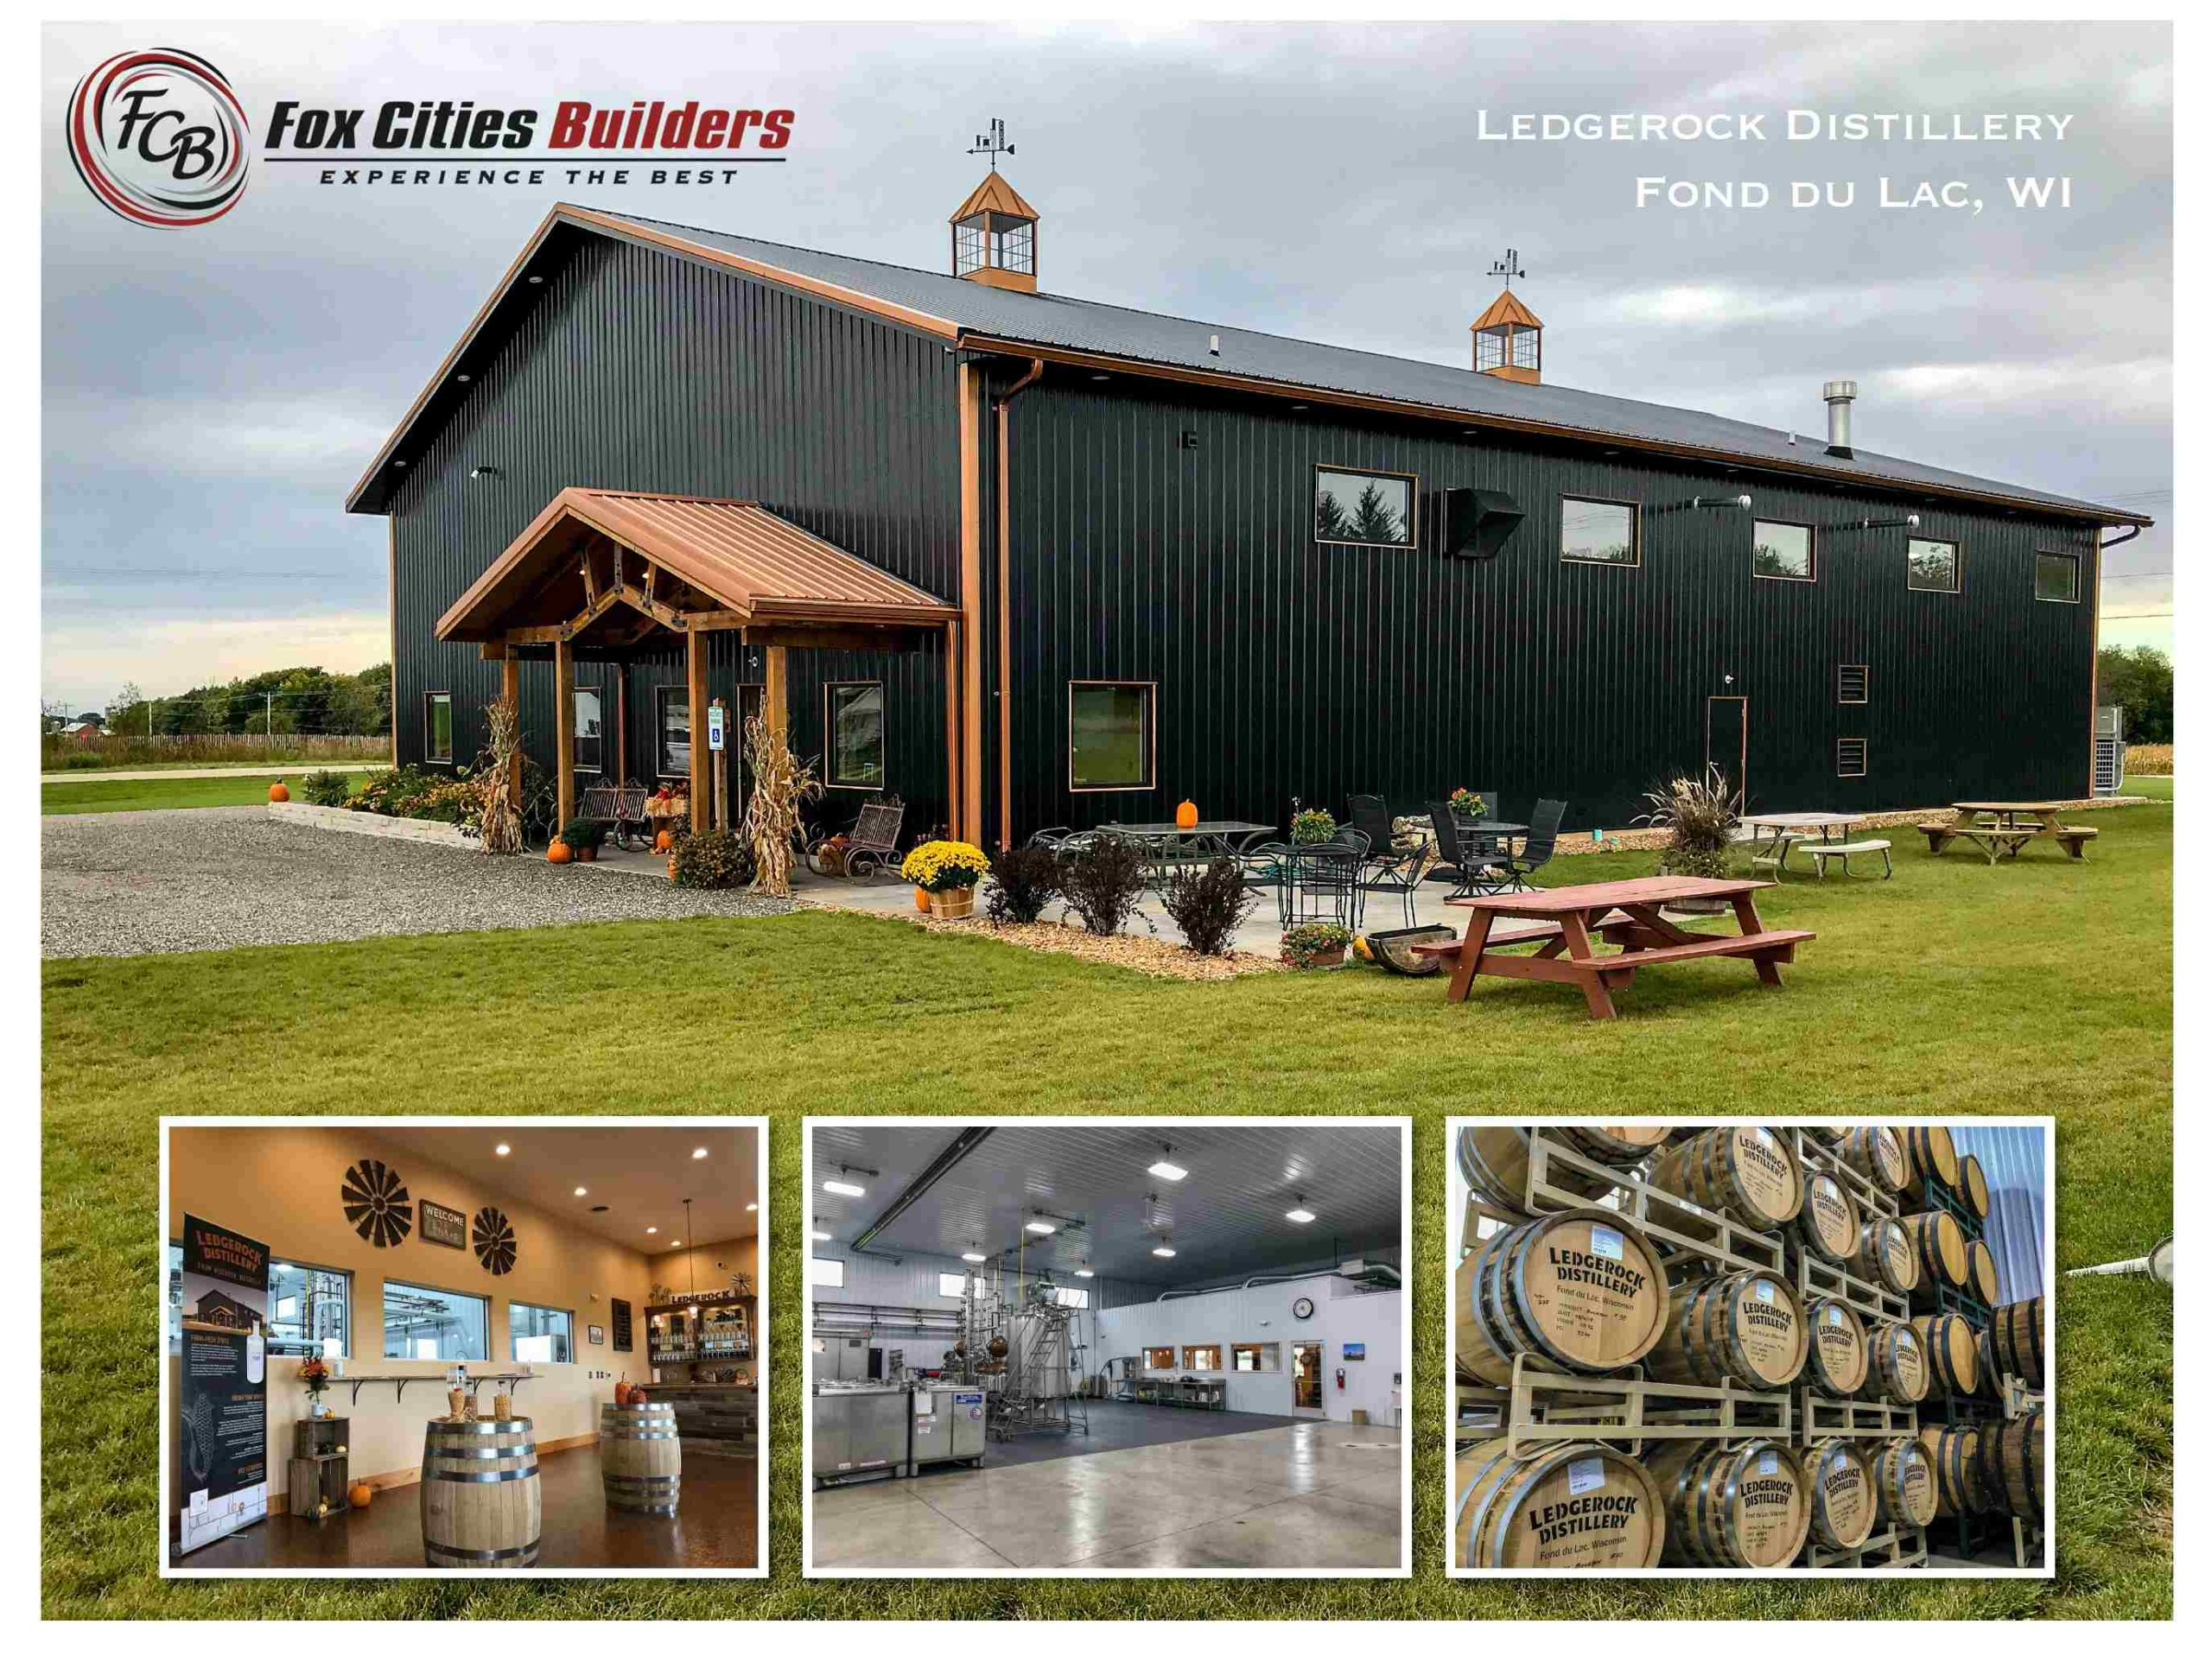 Ledgerock Distillery